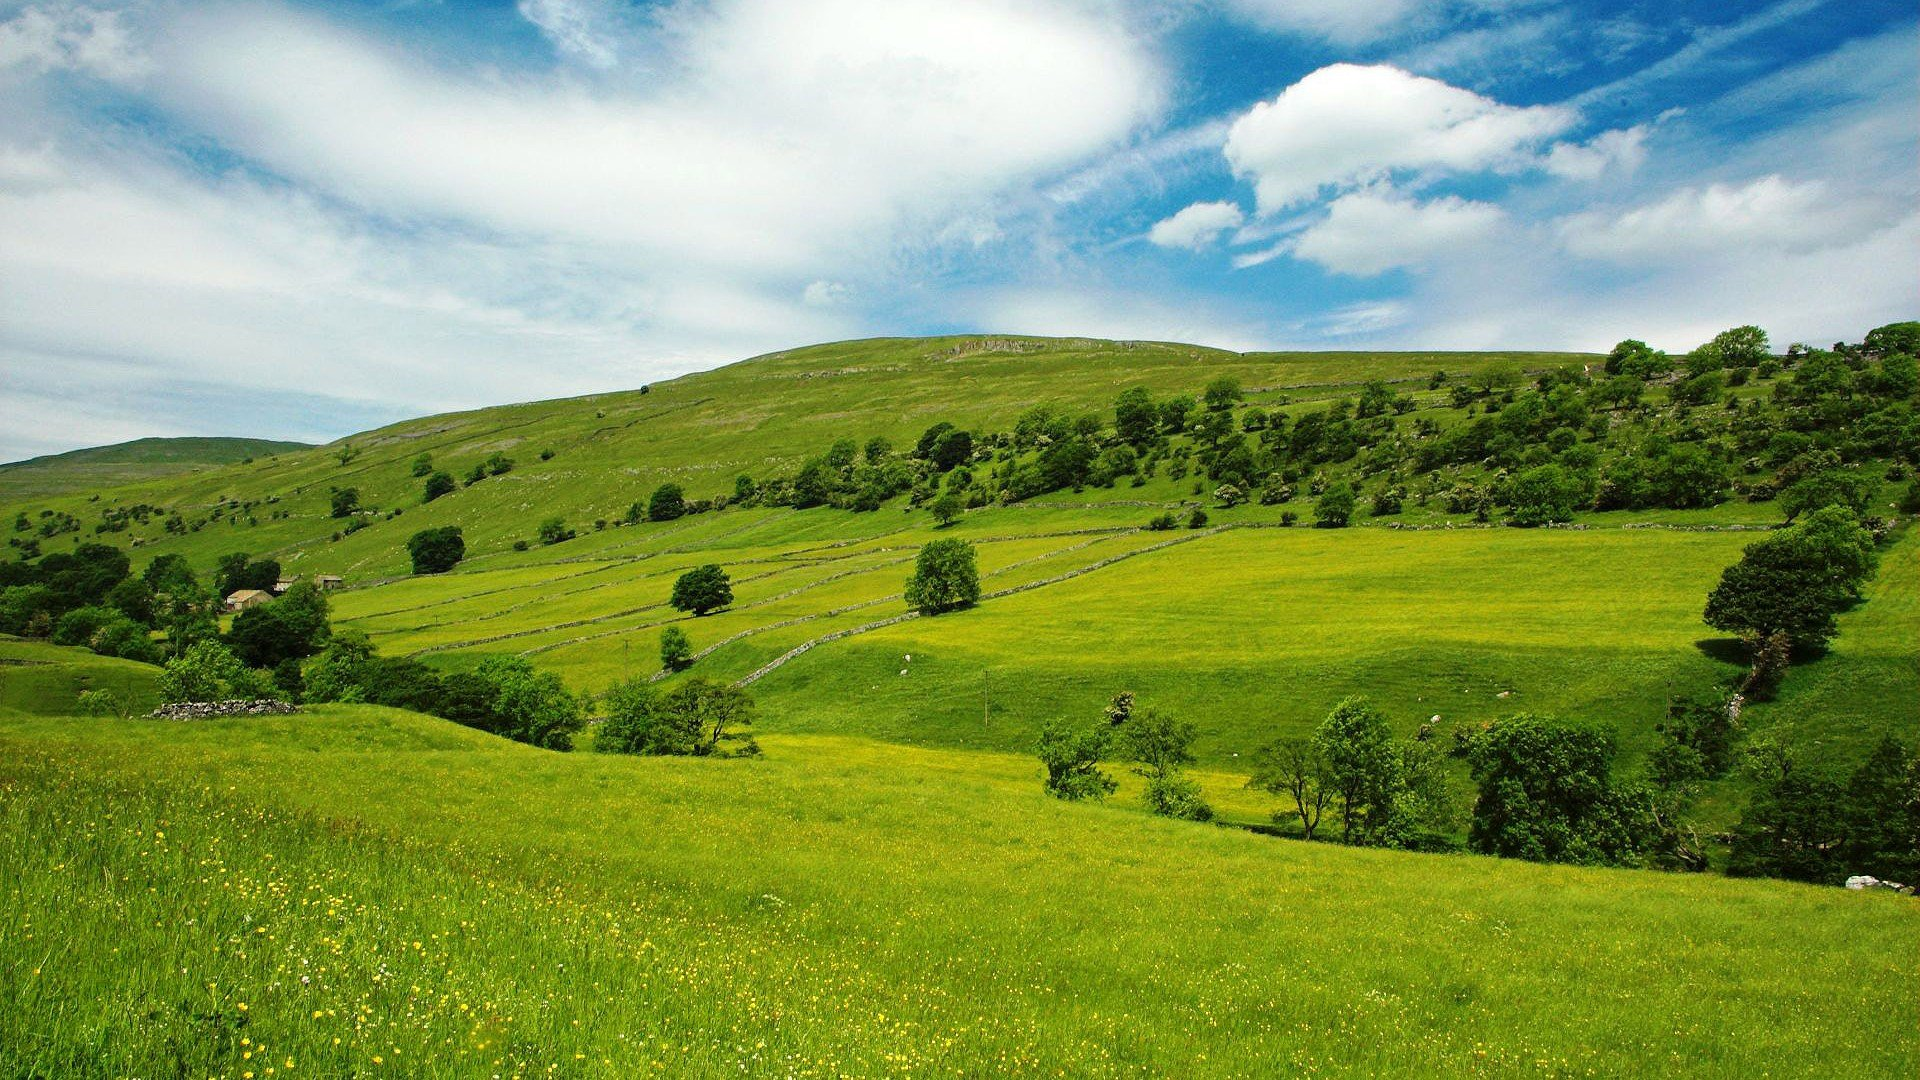 Green Plains Of Wales 1920x1080 HD Image Photography Landscapes 1920x1080